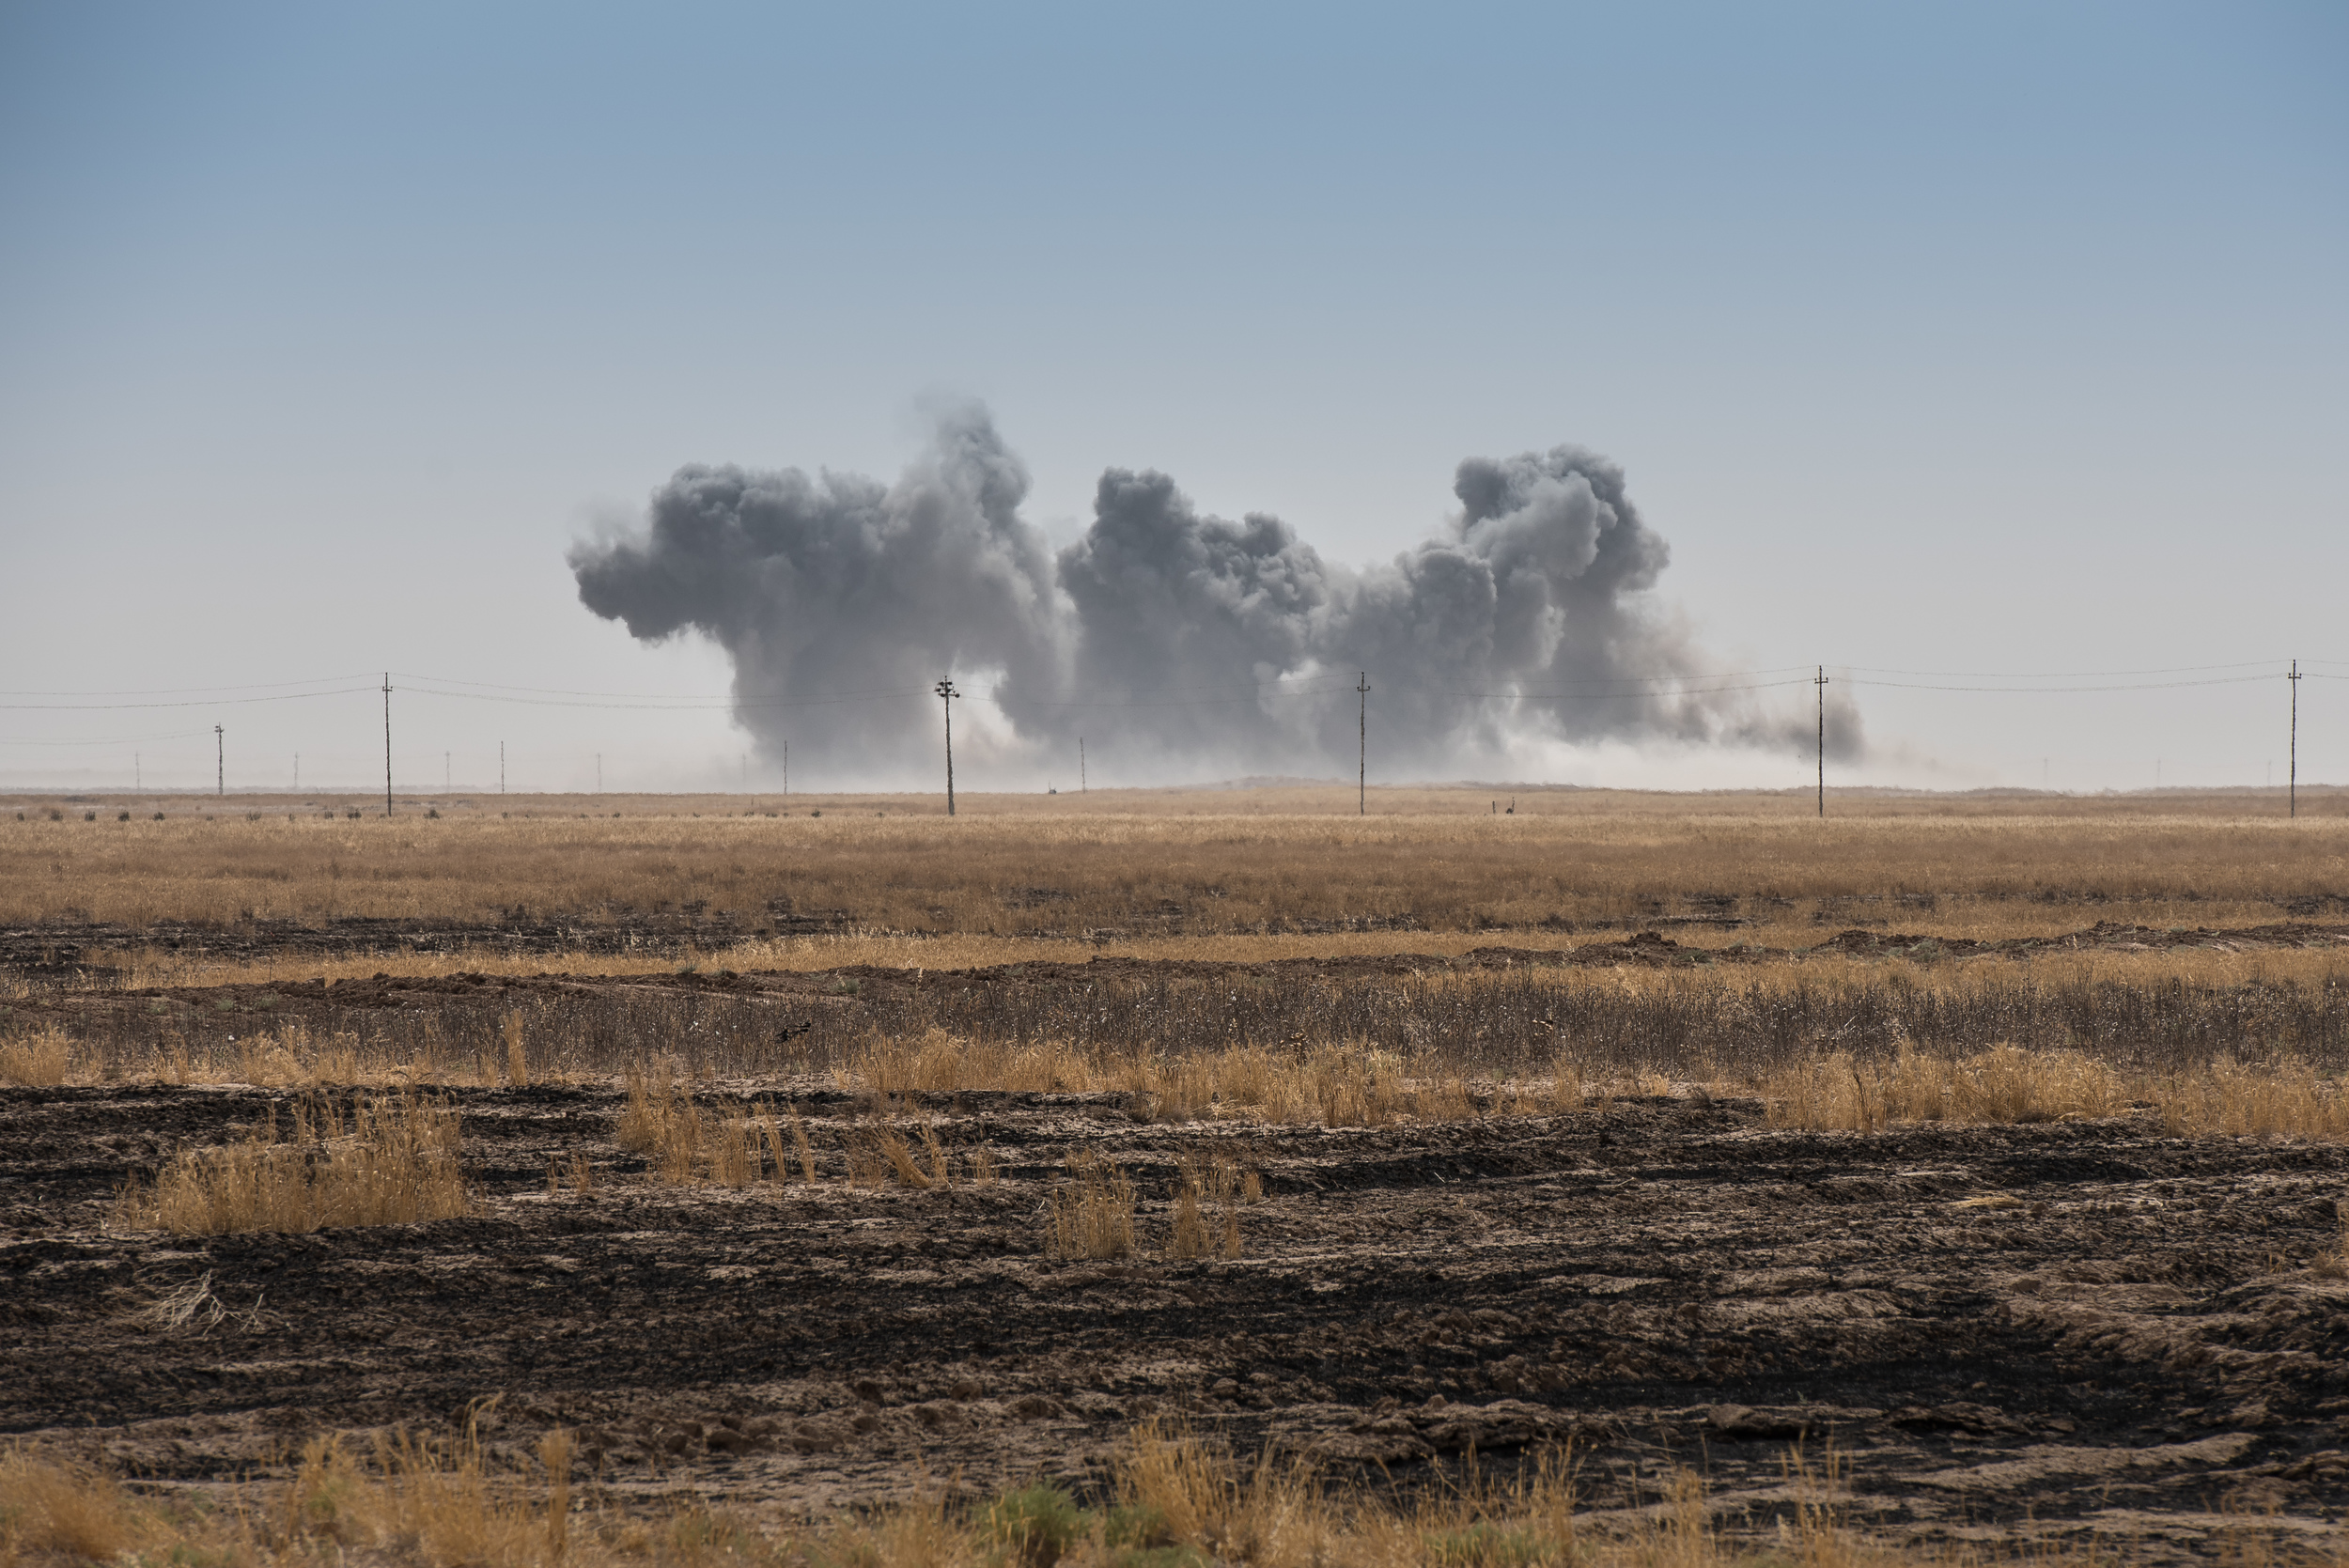 A coalition airstrike on a Islamic State (ISIS) position near the town of Makhmur (مەخموور)